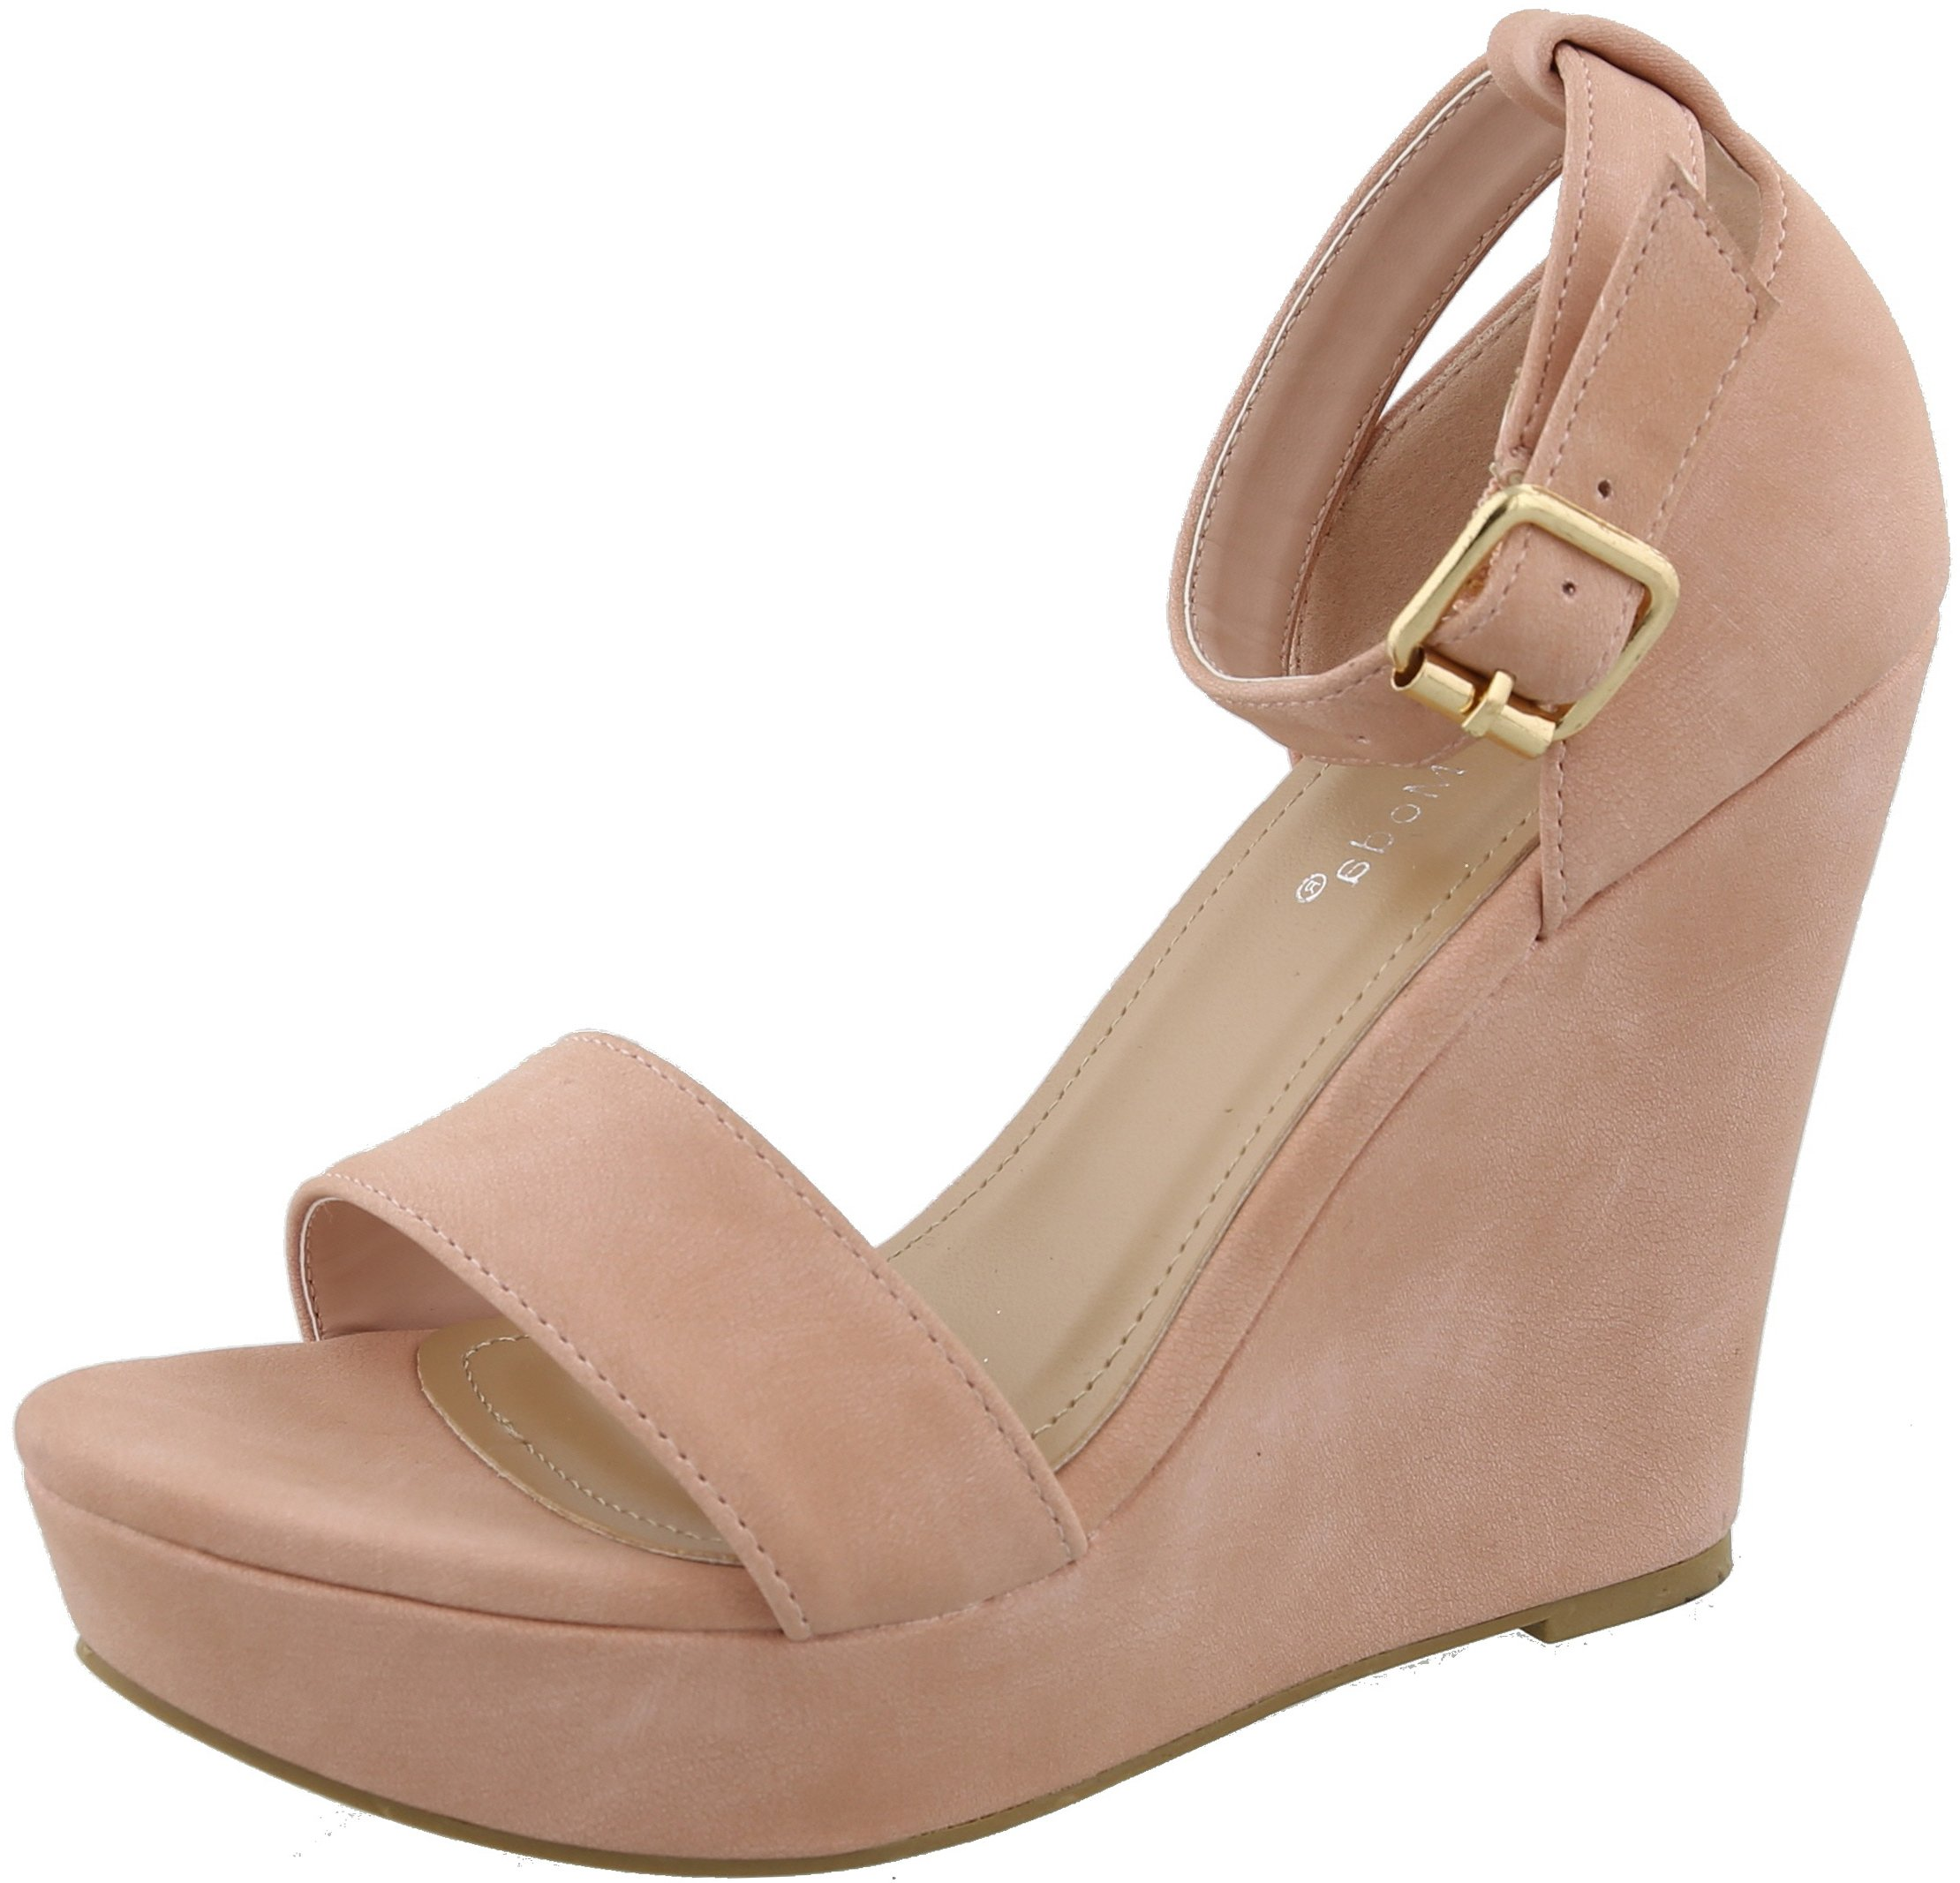 Top Moda Womens Beryl-1 Platform Wedge Fashion Sandals with Ankle Strap | Wedge Heels | Blush 10